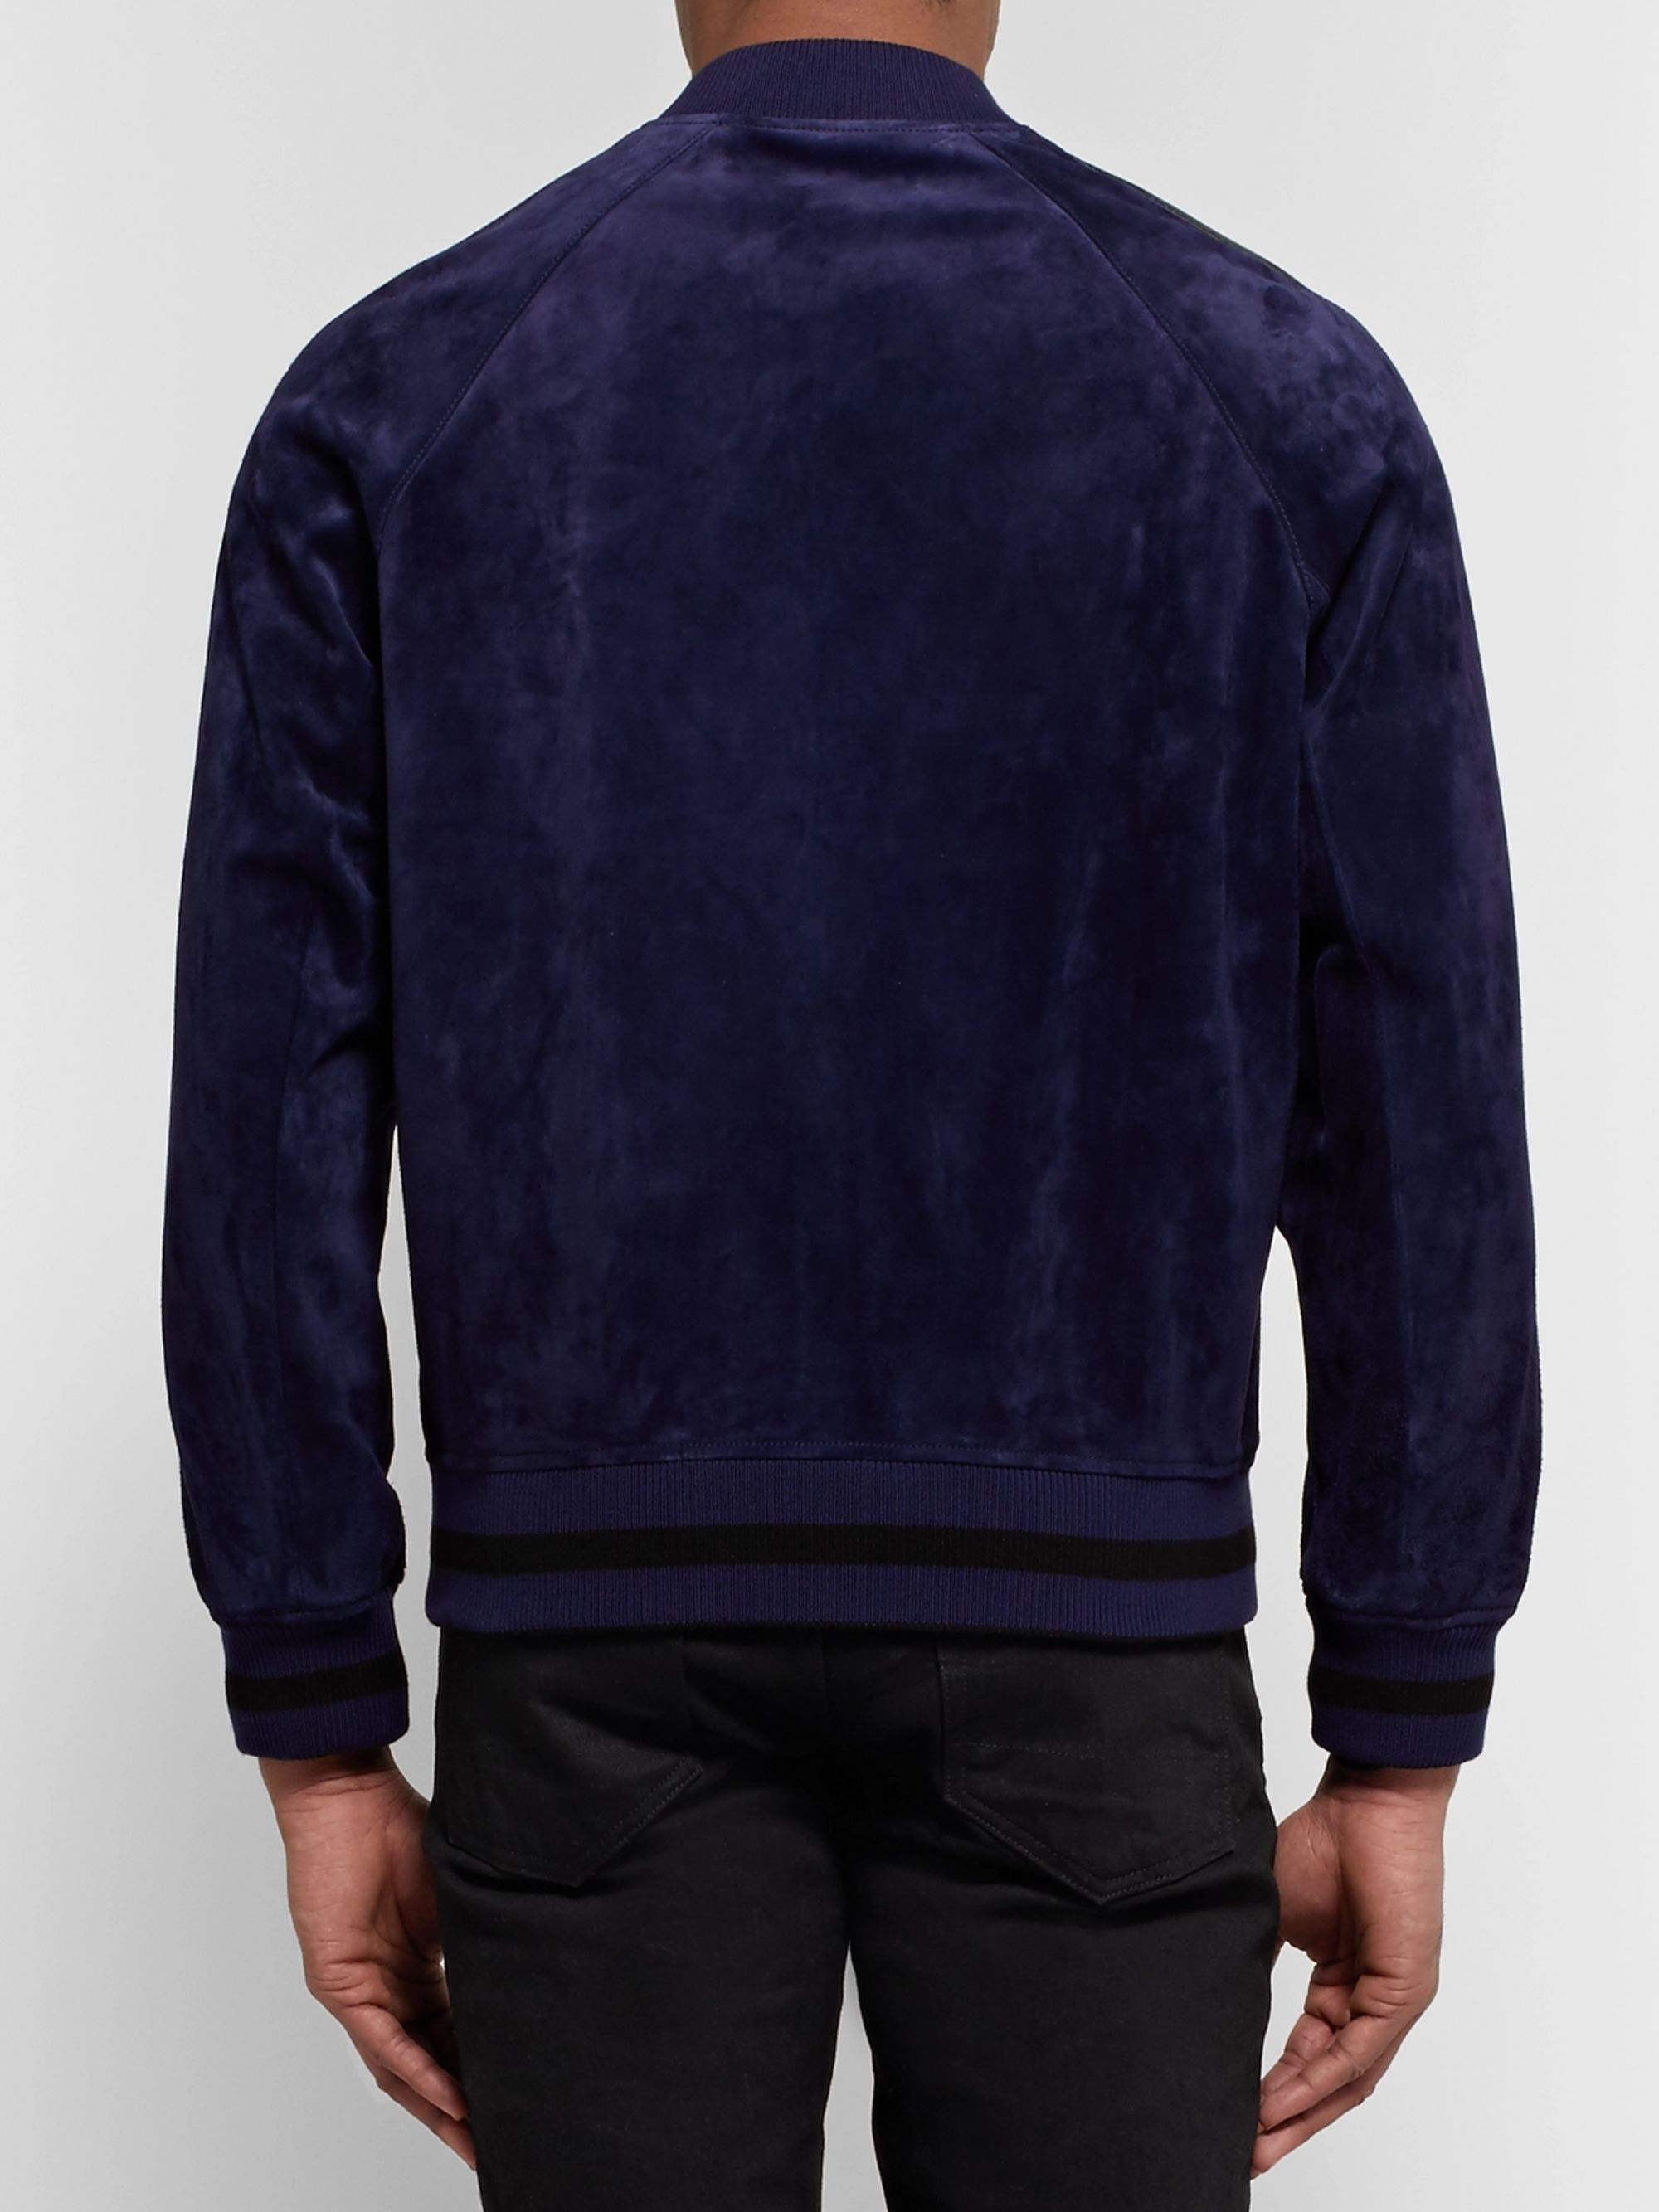 Berluti Reversible Leather-Trimmed Suede and Jacquard Bomber Jacket